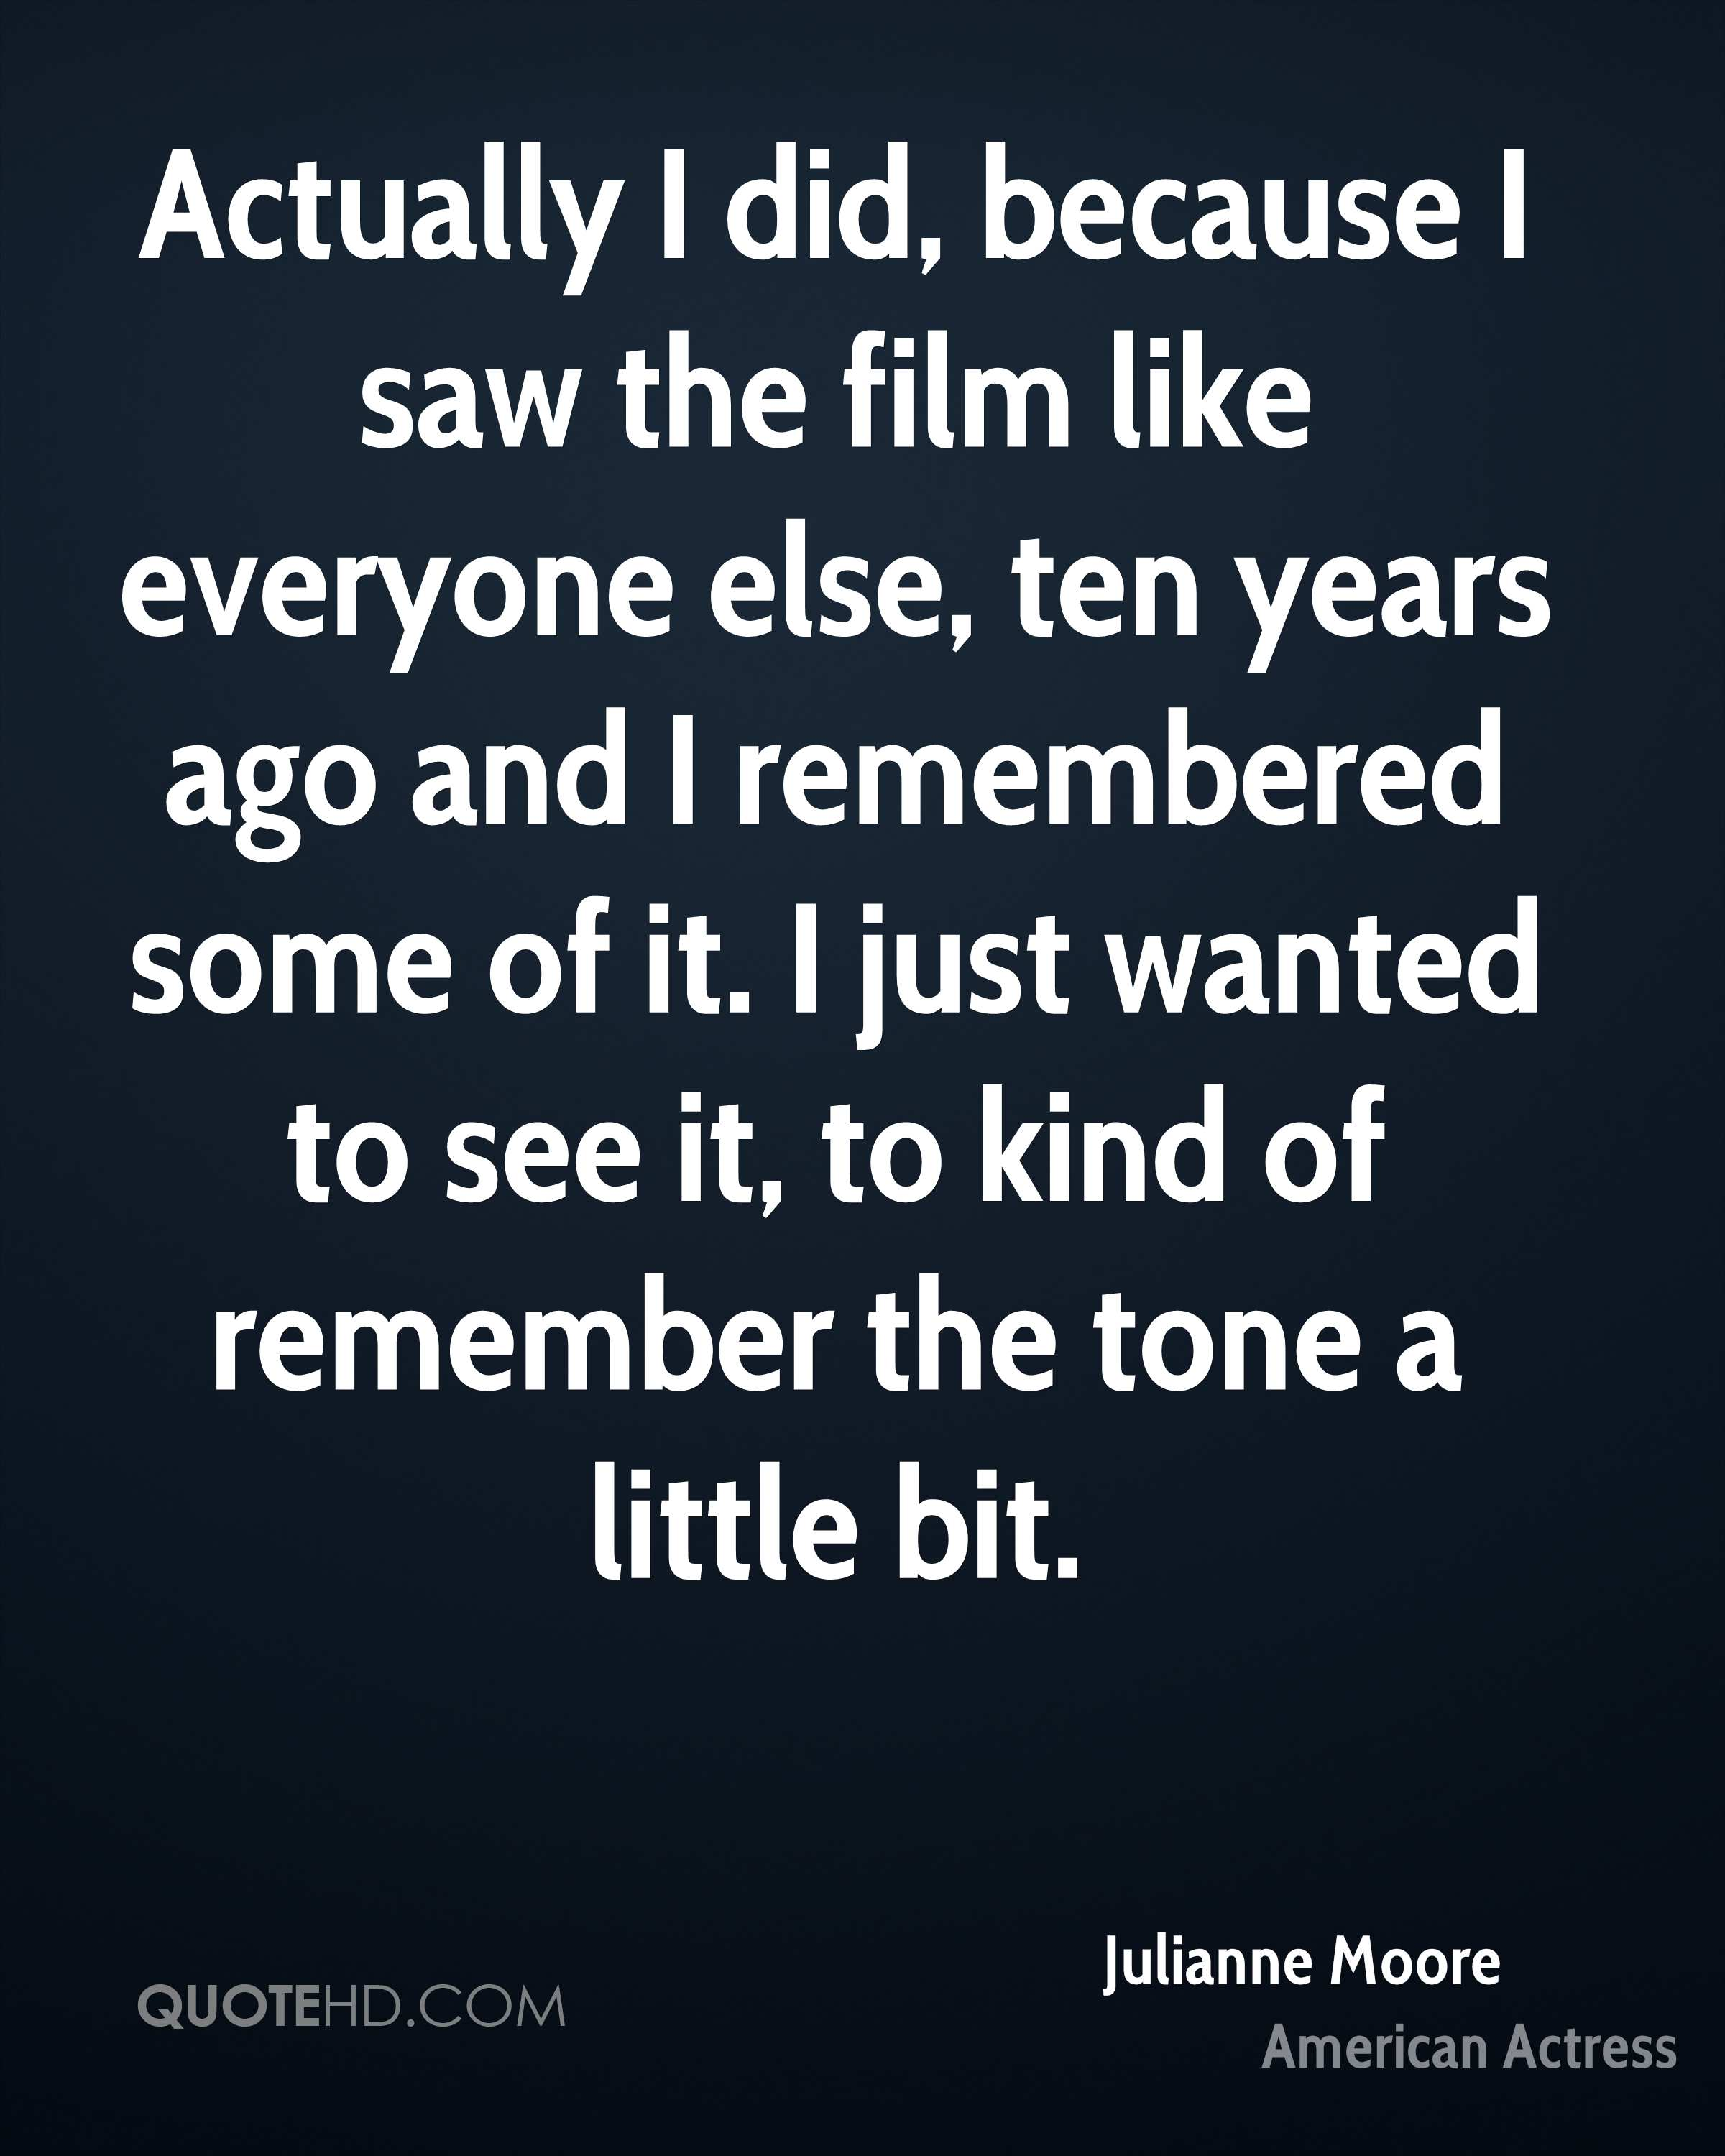 Actually I did, because I saw the film like everyone else, ten years ago and I remembered some of it. I just wanted to see it, to kind of remember the tone a little bit.